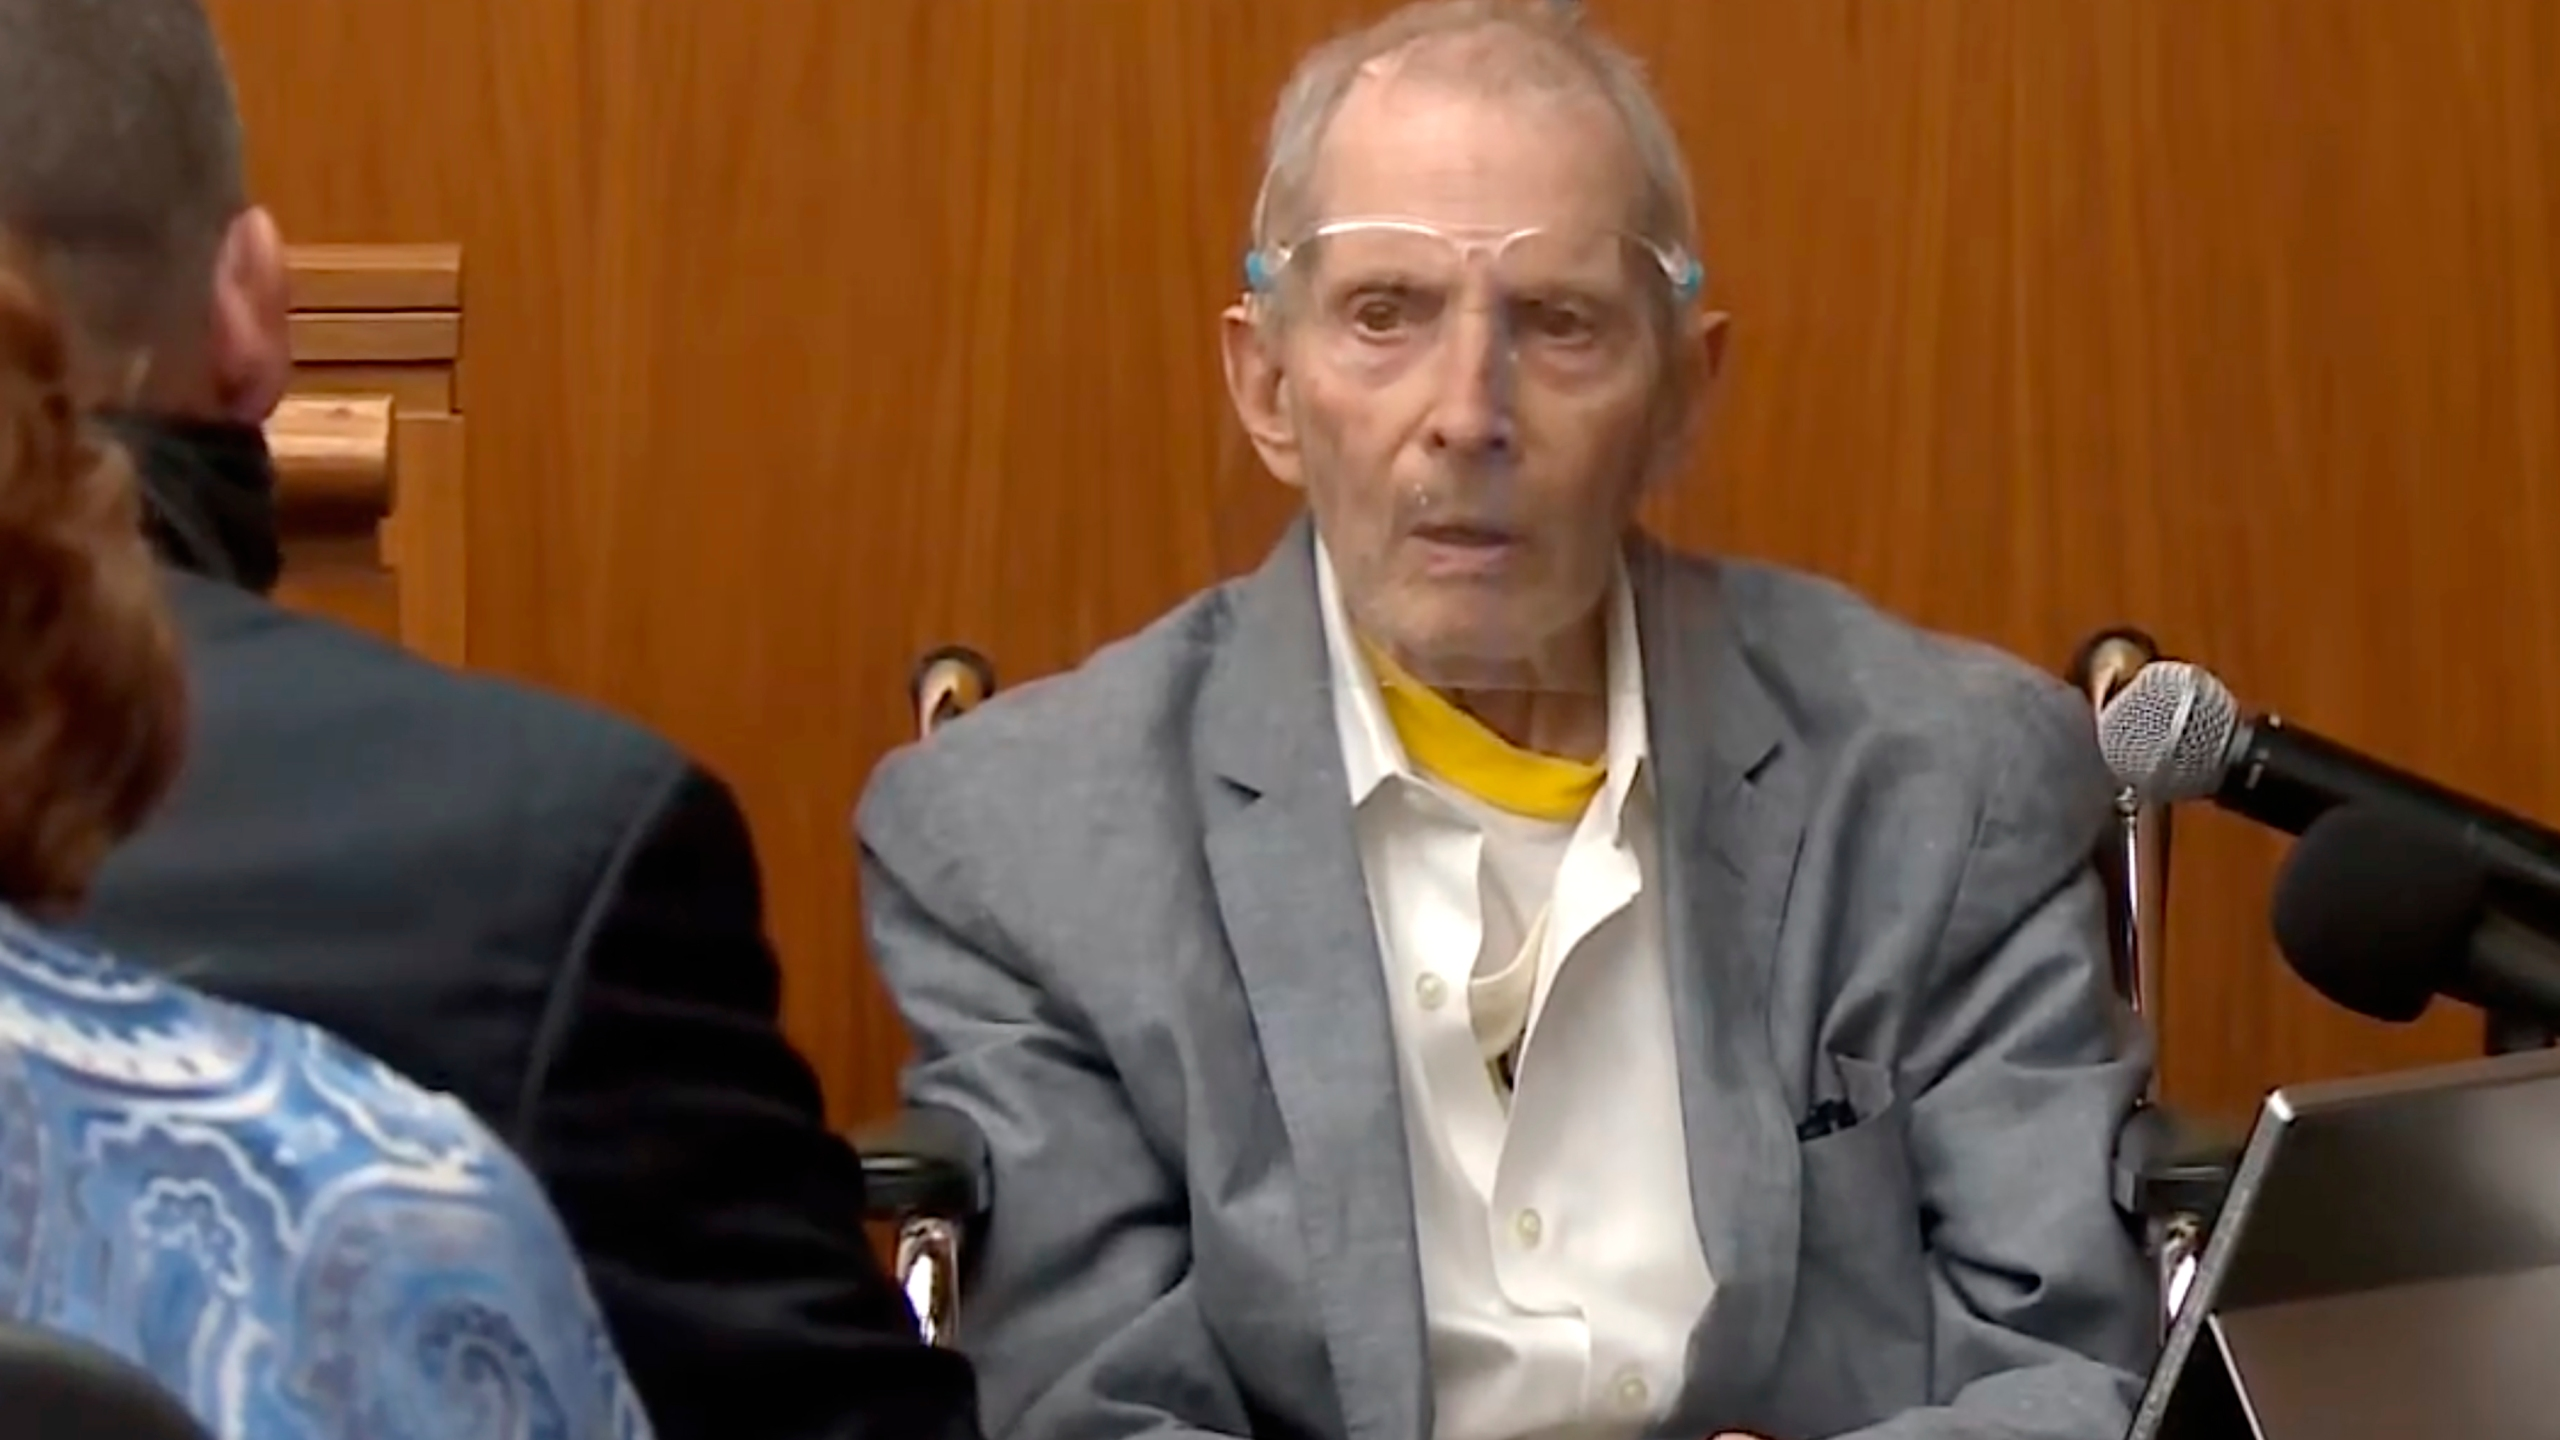 In this still image taken from the Law & Crime Network court video, real estate heir Robert Durst answers questions while taking the stand during his murder trial on Aug. 31, 2021, in Los Angeles County Superior Court in Inglewood, Calif. (Law & Crime Network via AP, Pool)